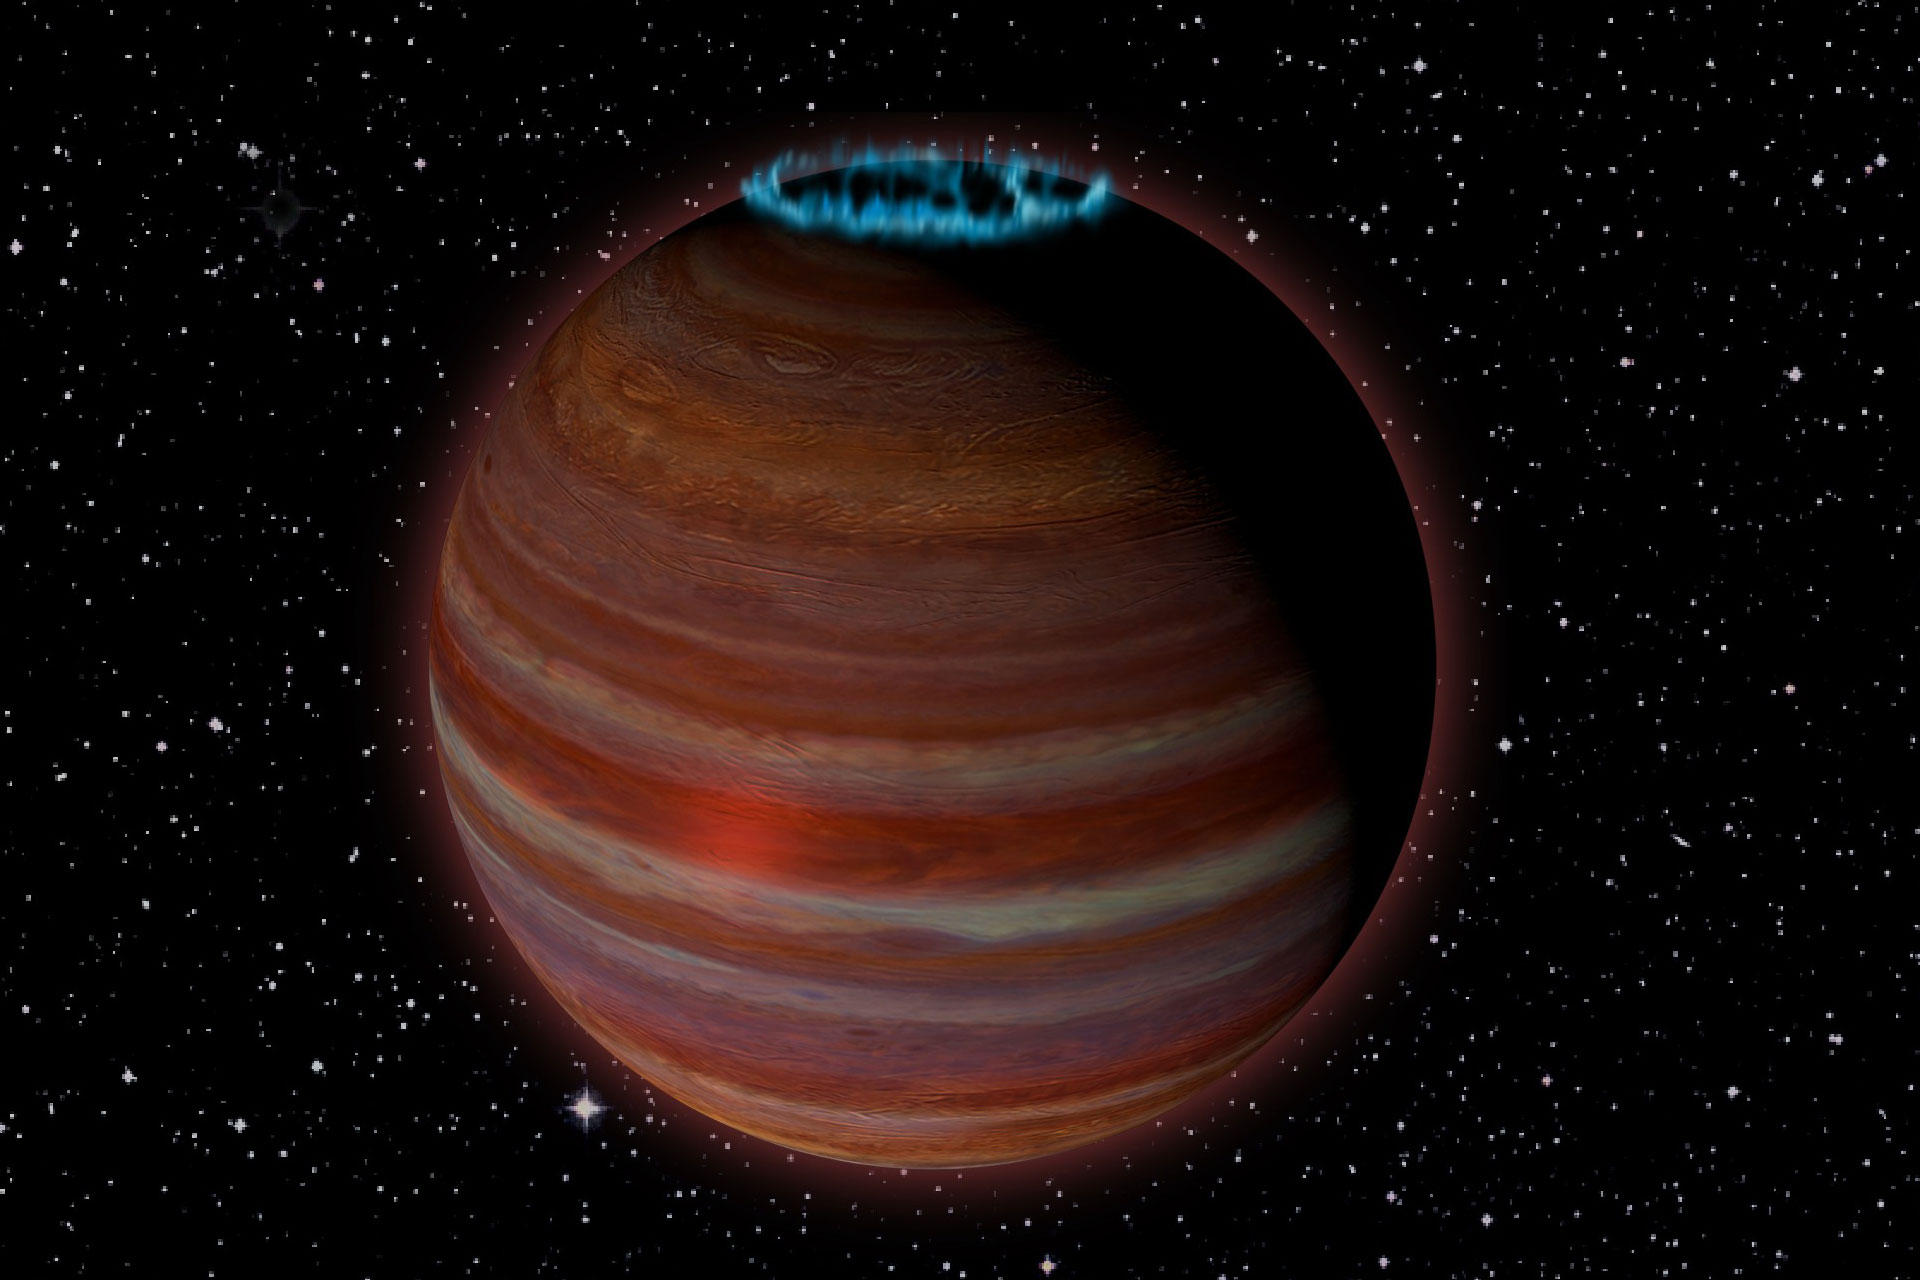 Massive rogue planet found lurking outside our solar system